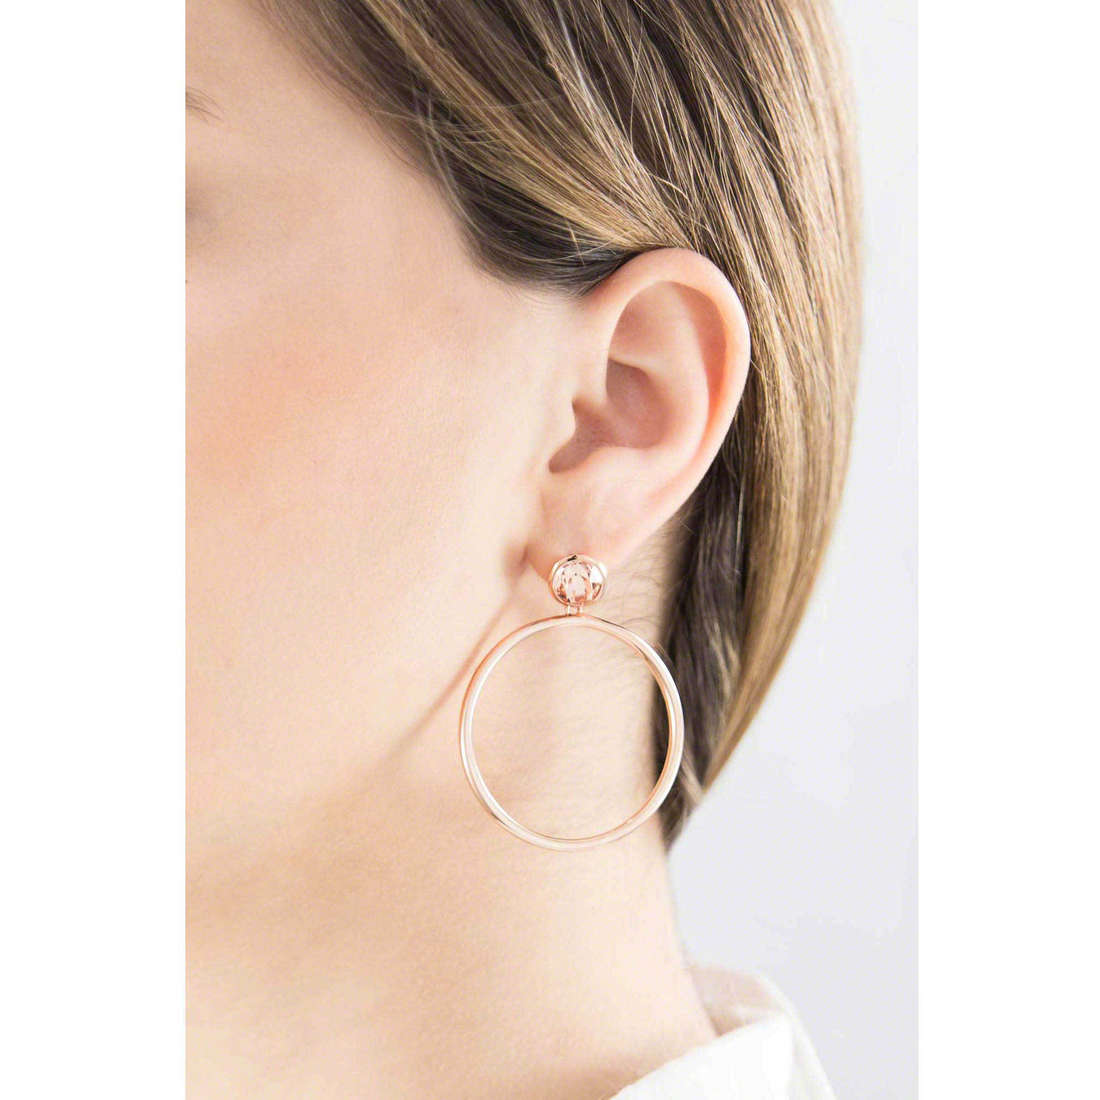 Brosway boucles d'oreille E-Tring femme BRT31 photo wearing